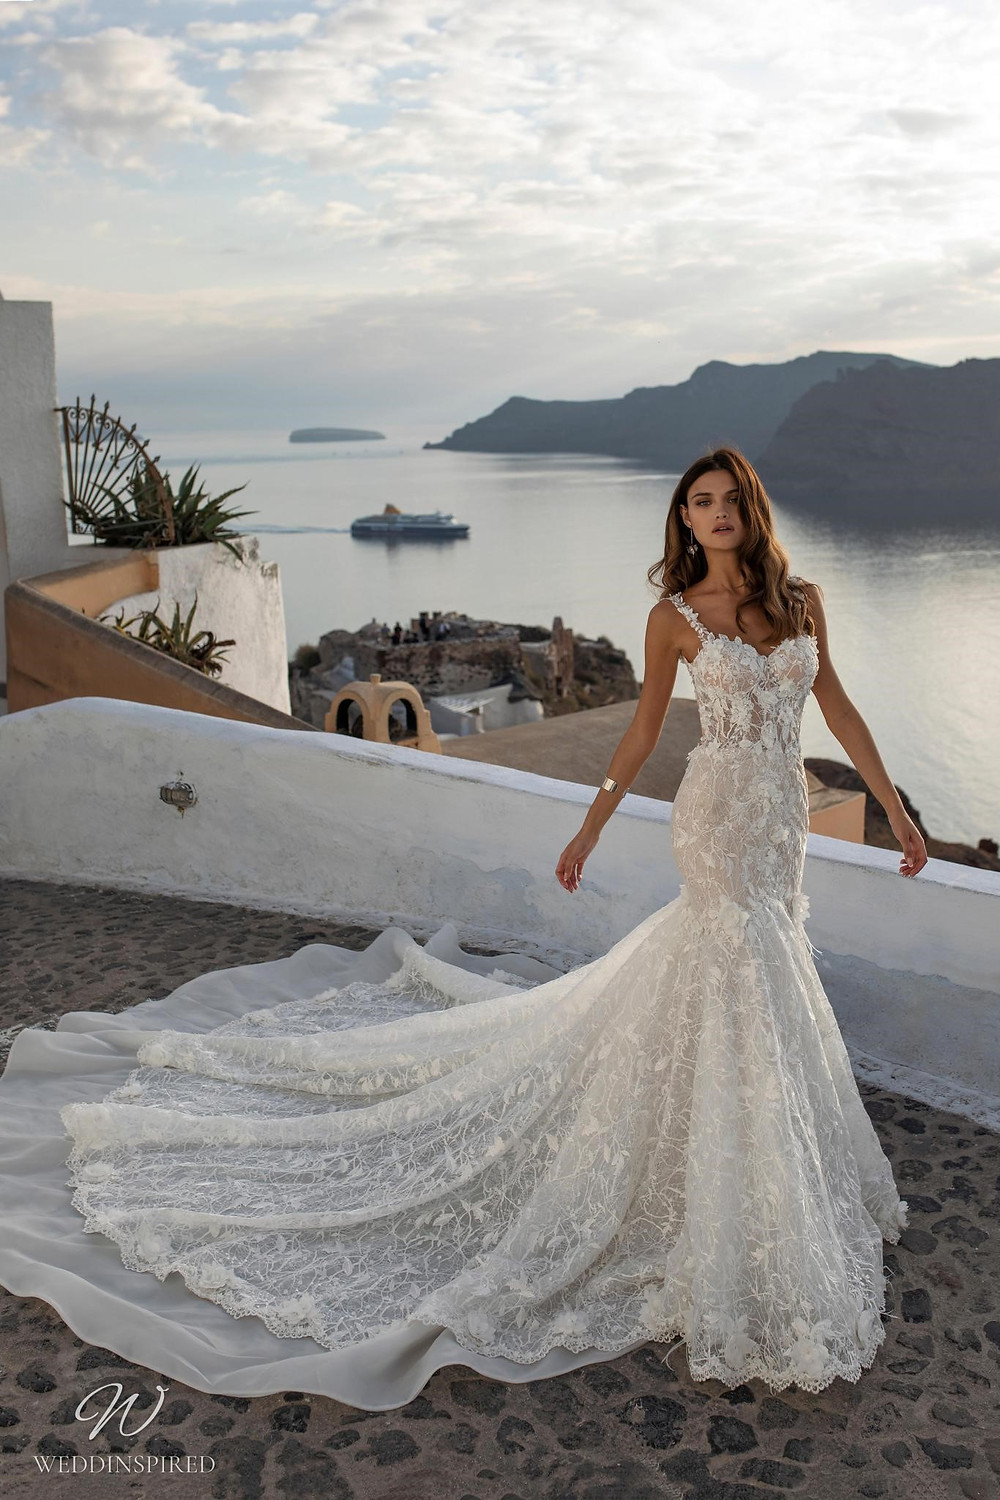 A Ricca Sposa lace mermaid wedding dress with a sweetheart neckline, straps and a train